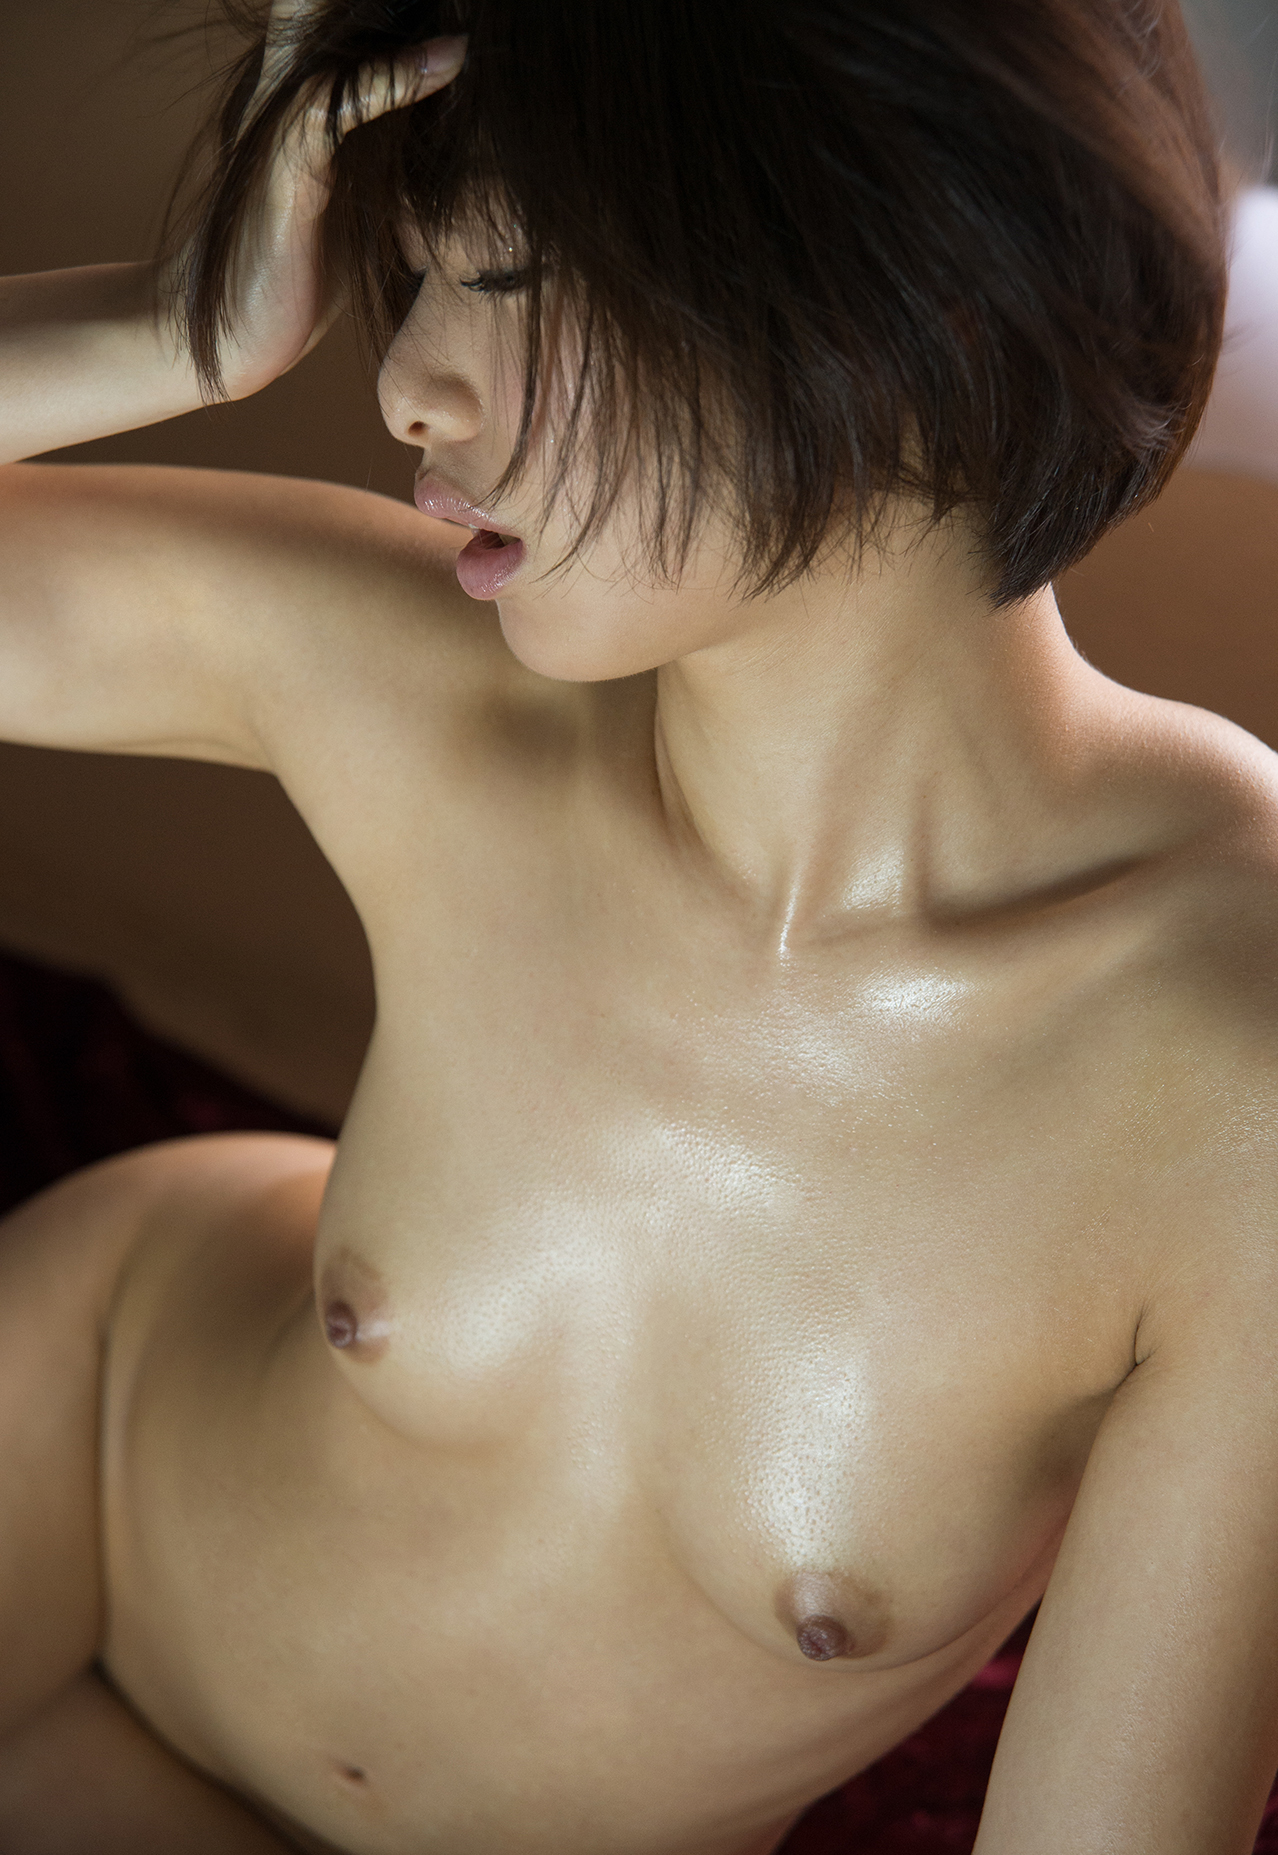 Asian Hairless Cute Chinese With Inverted Nipples